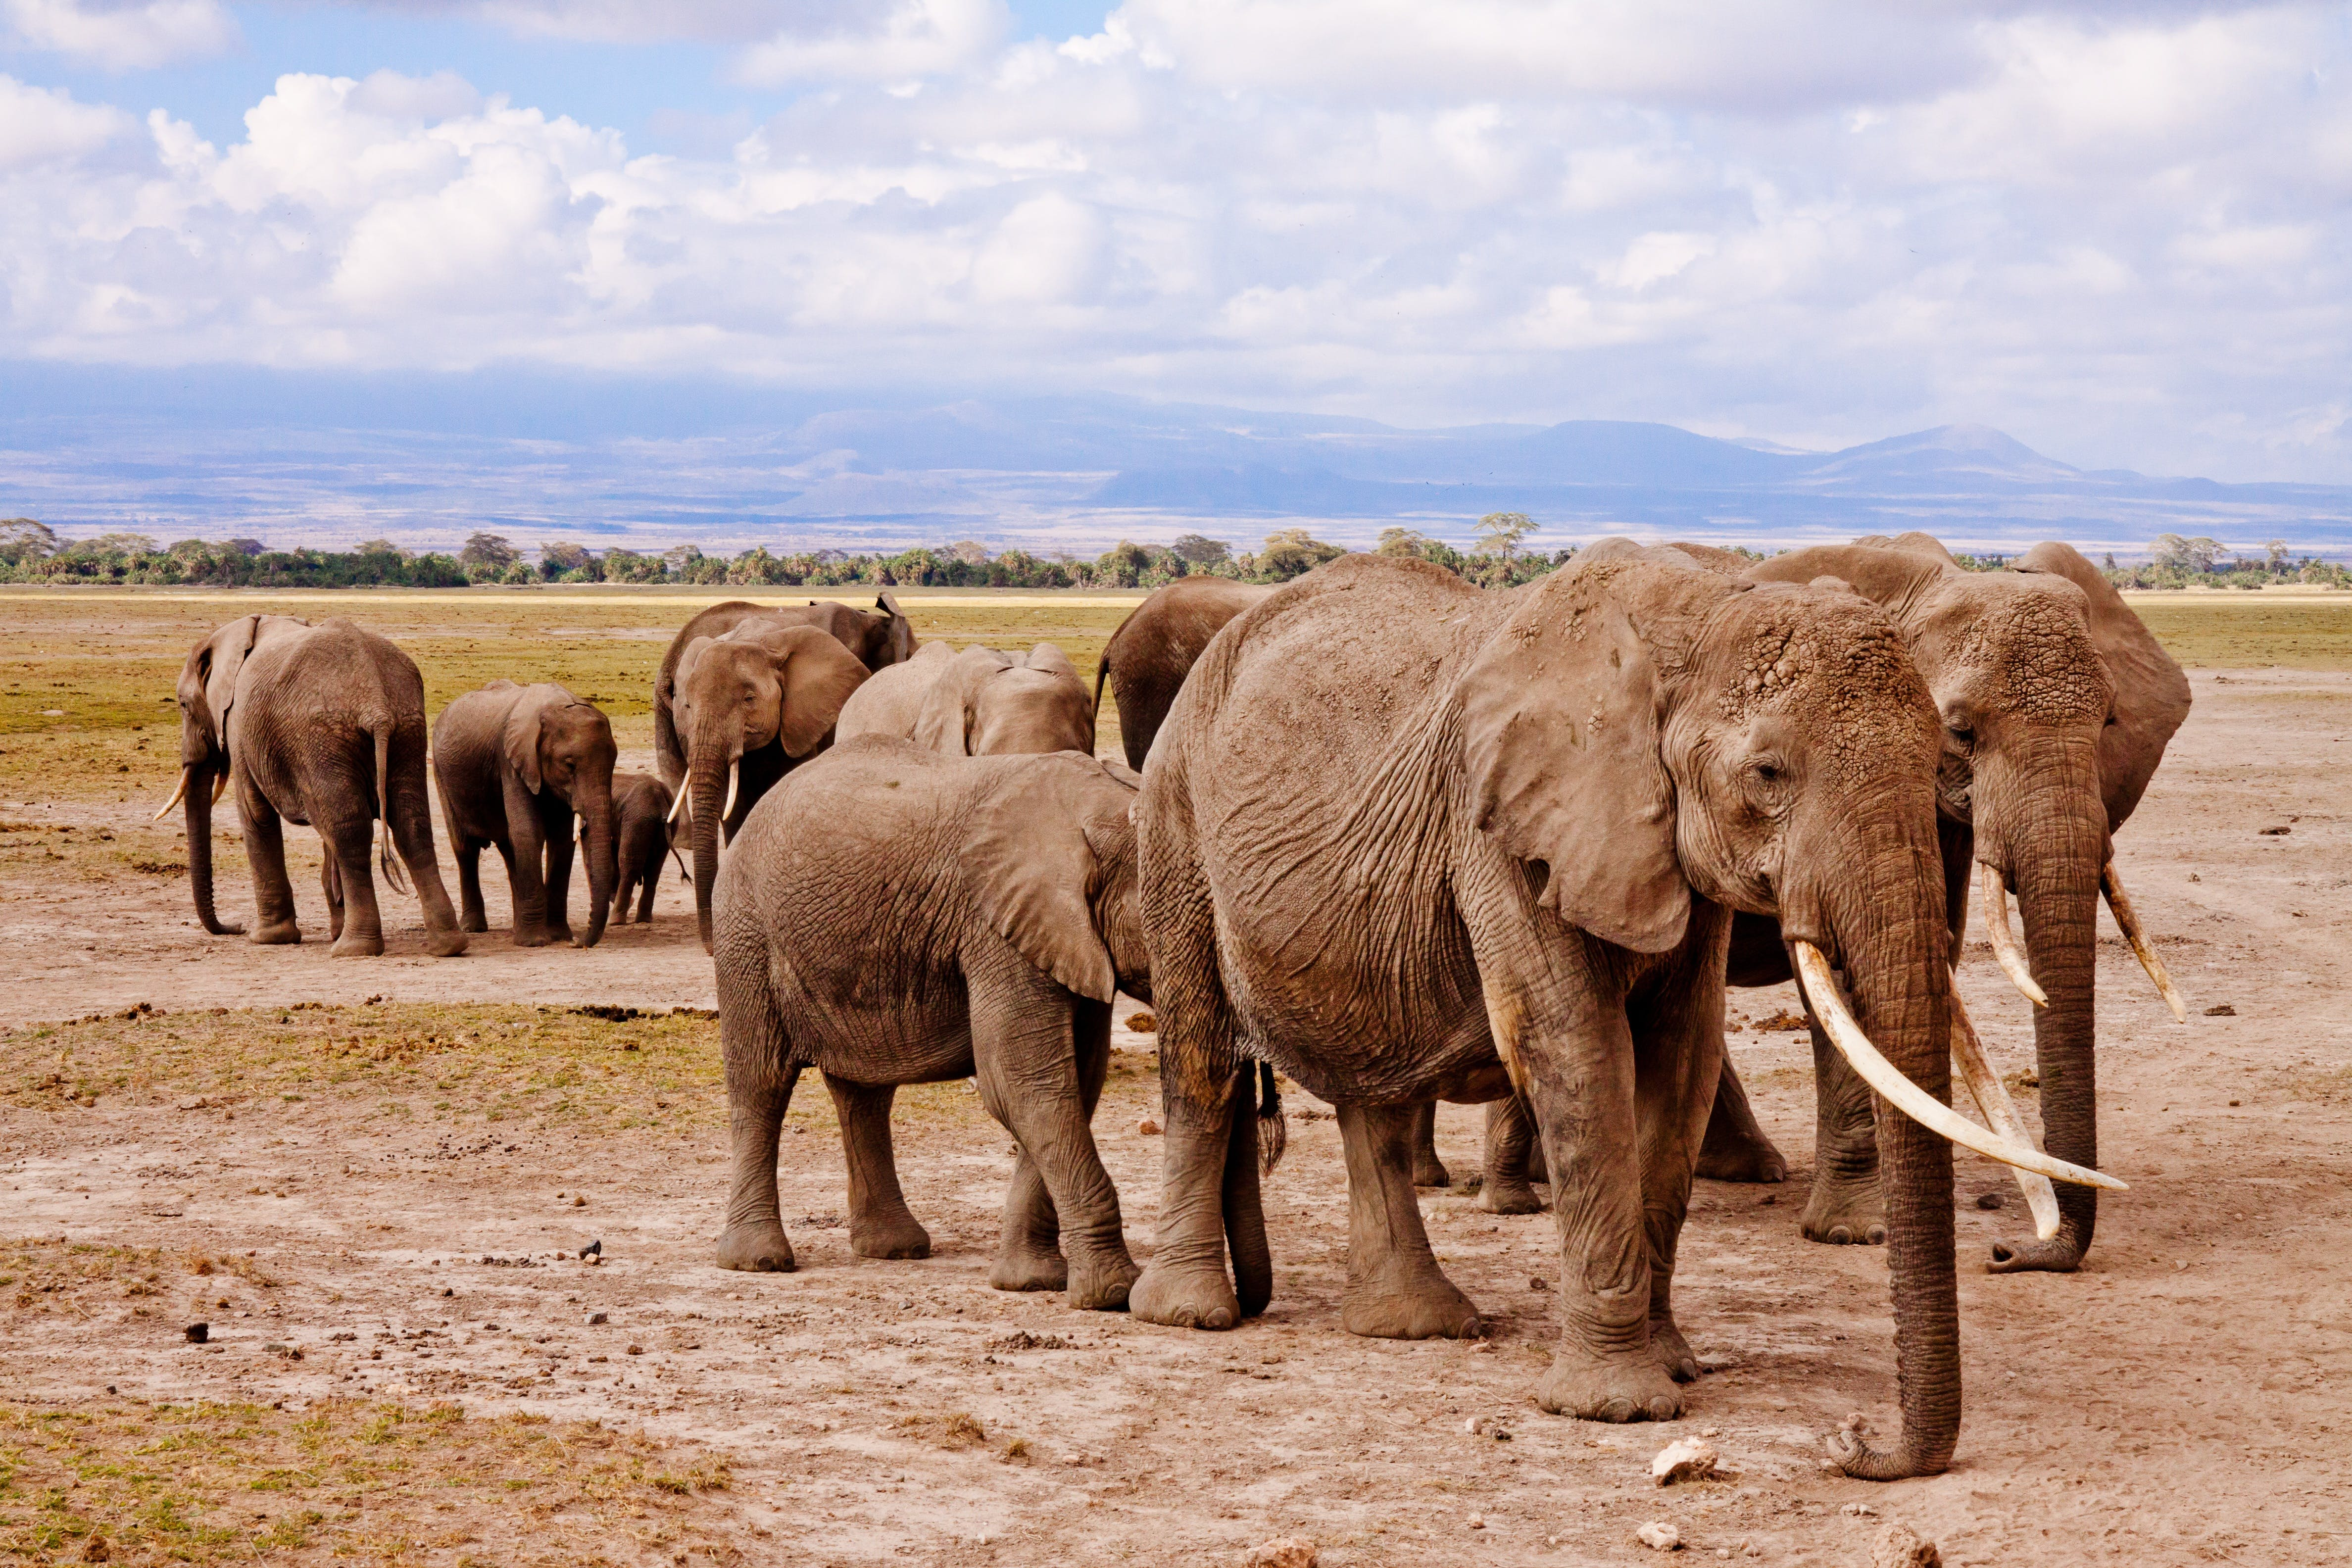 Group of Elephants on Walking on Brown Road during Daytime